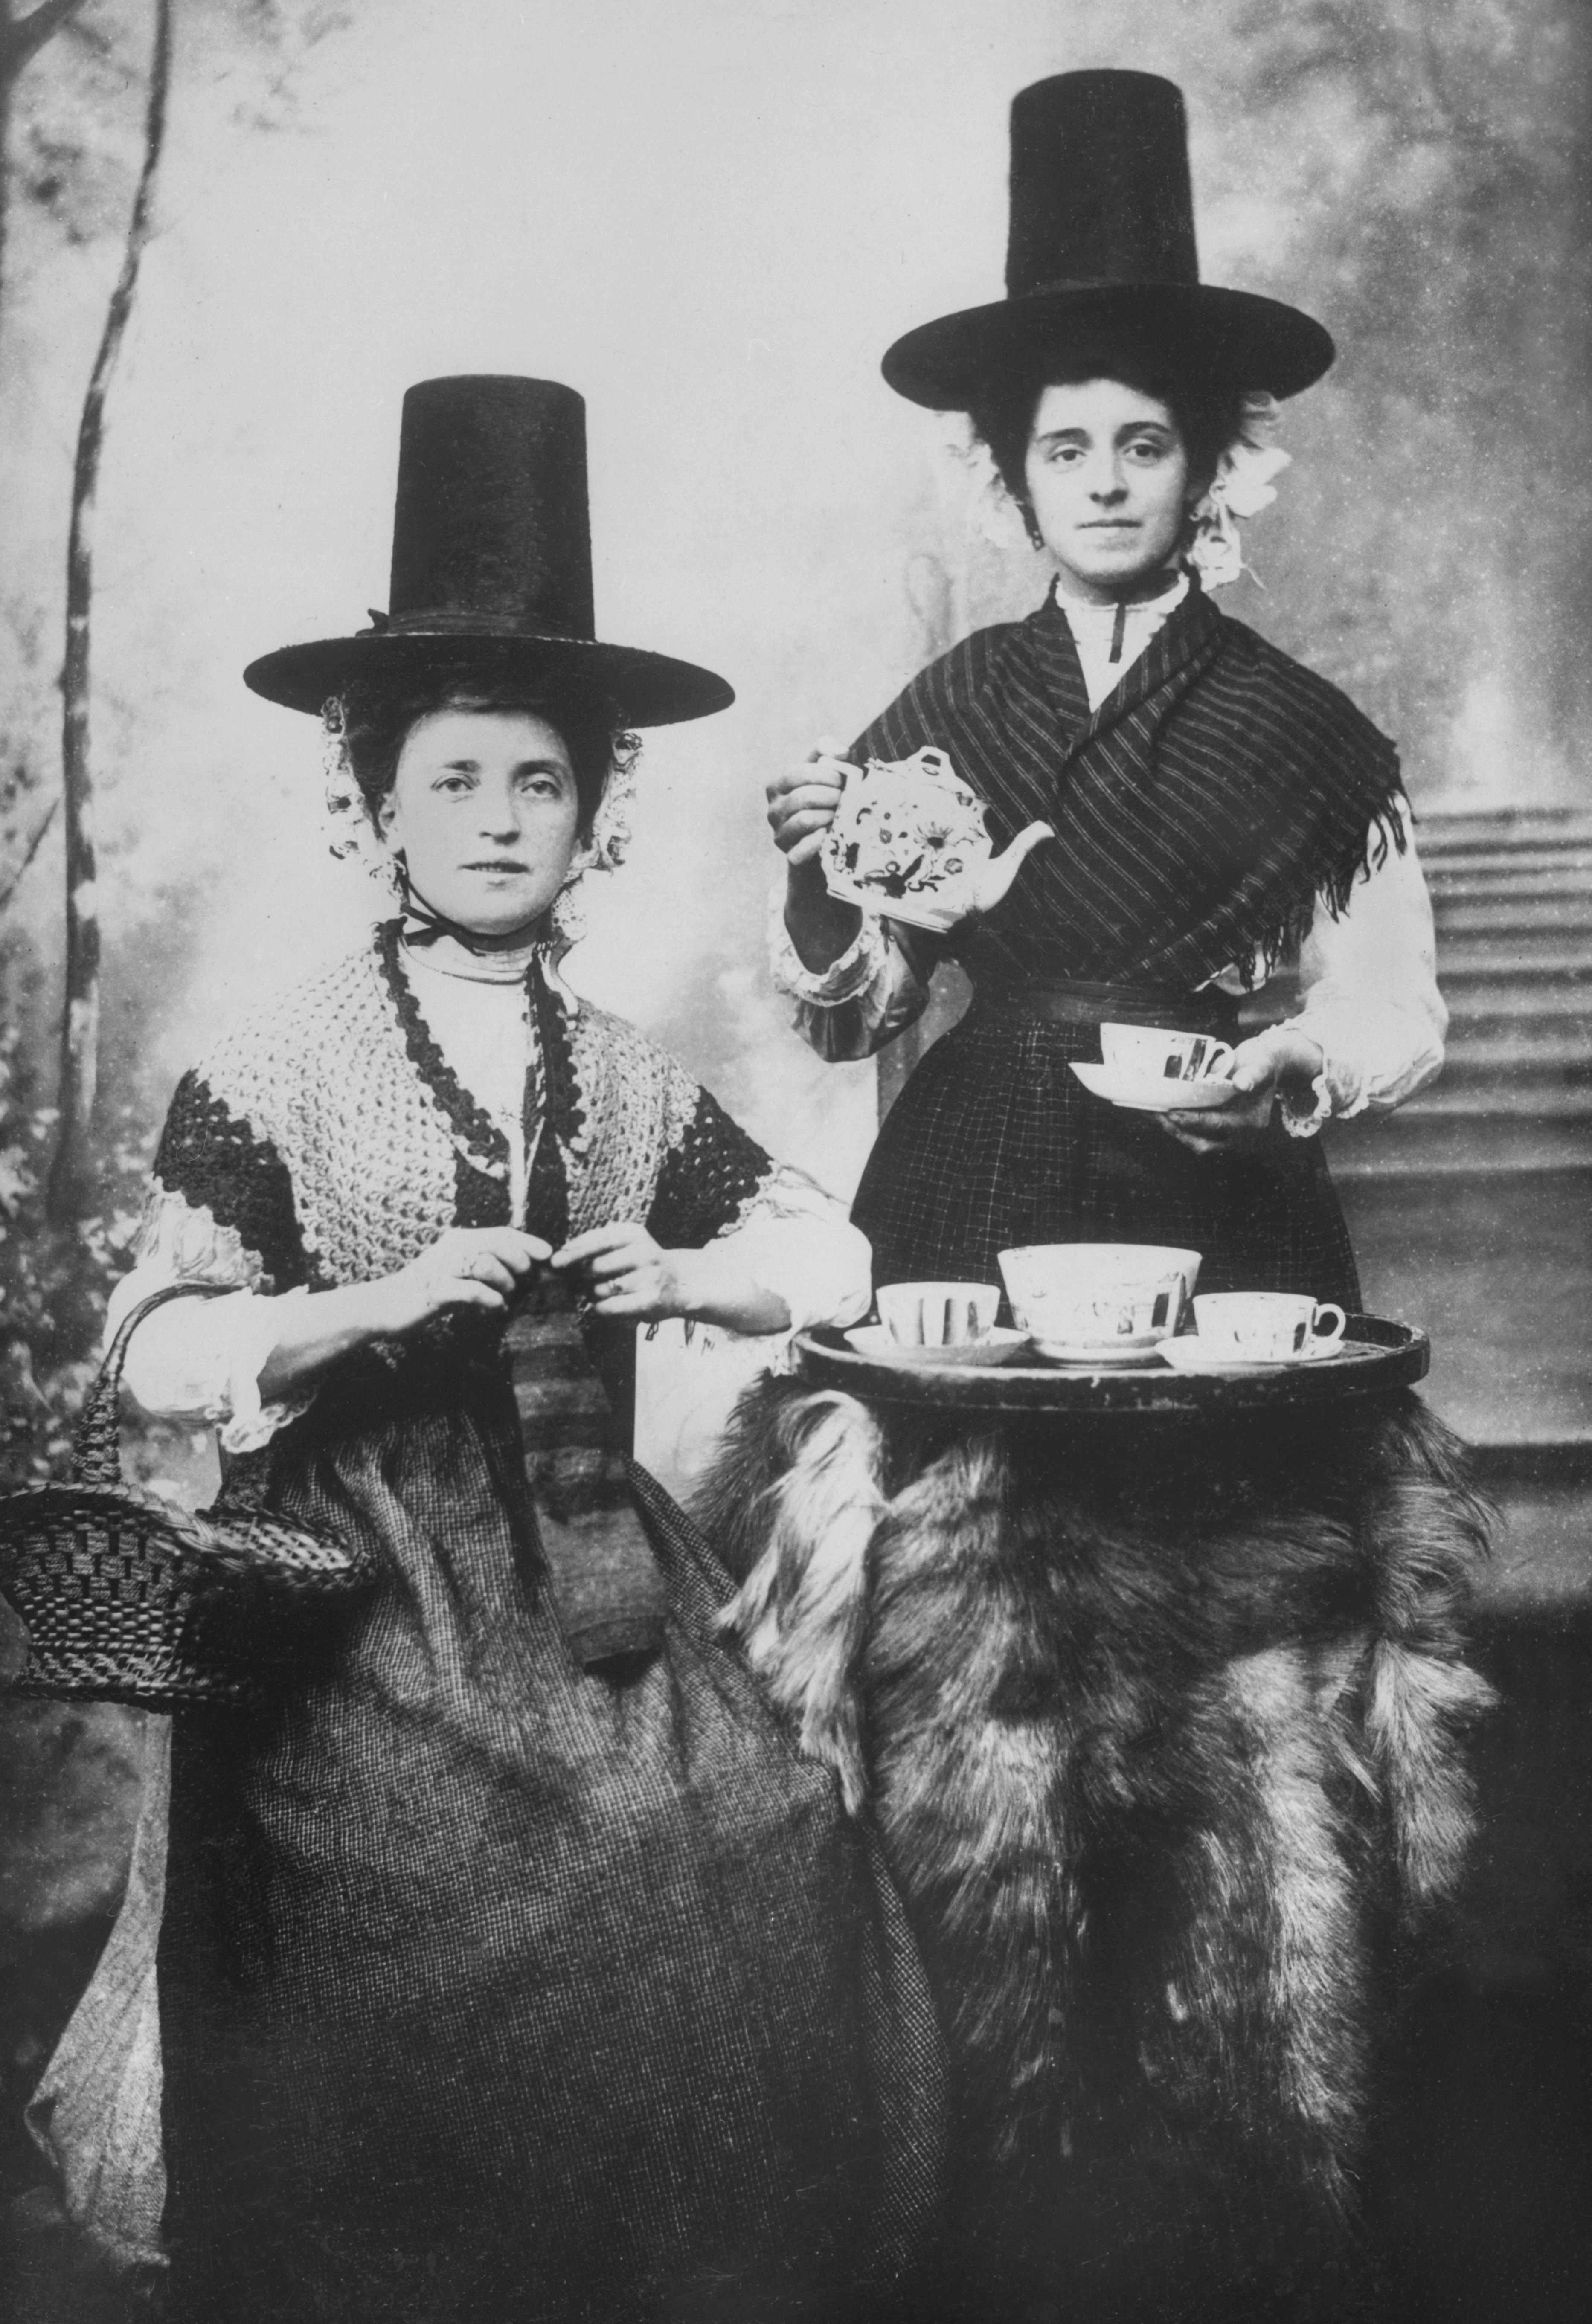 Women in traditional Welsh dress, c1896. (Past Pix/SSPL/Getty Images)